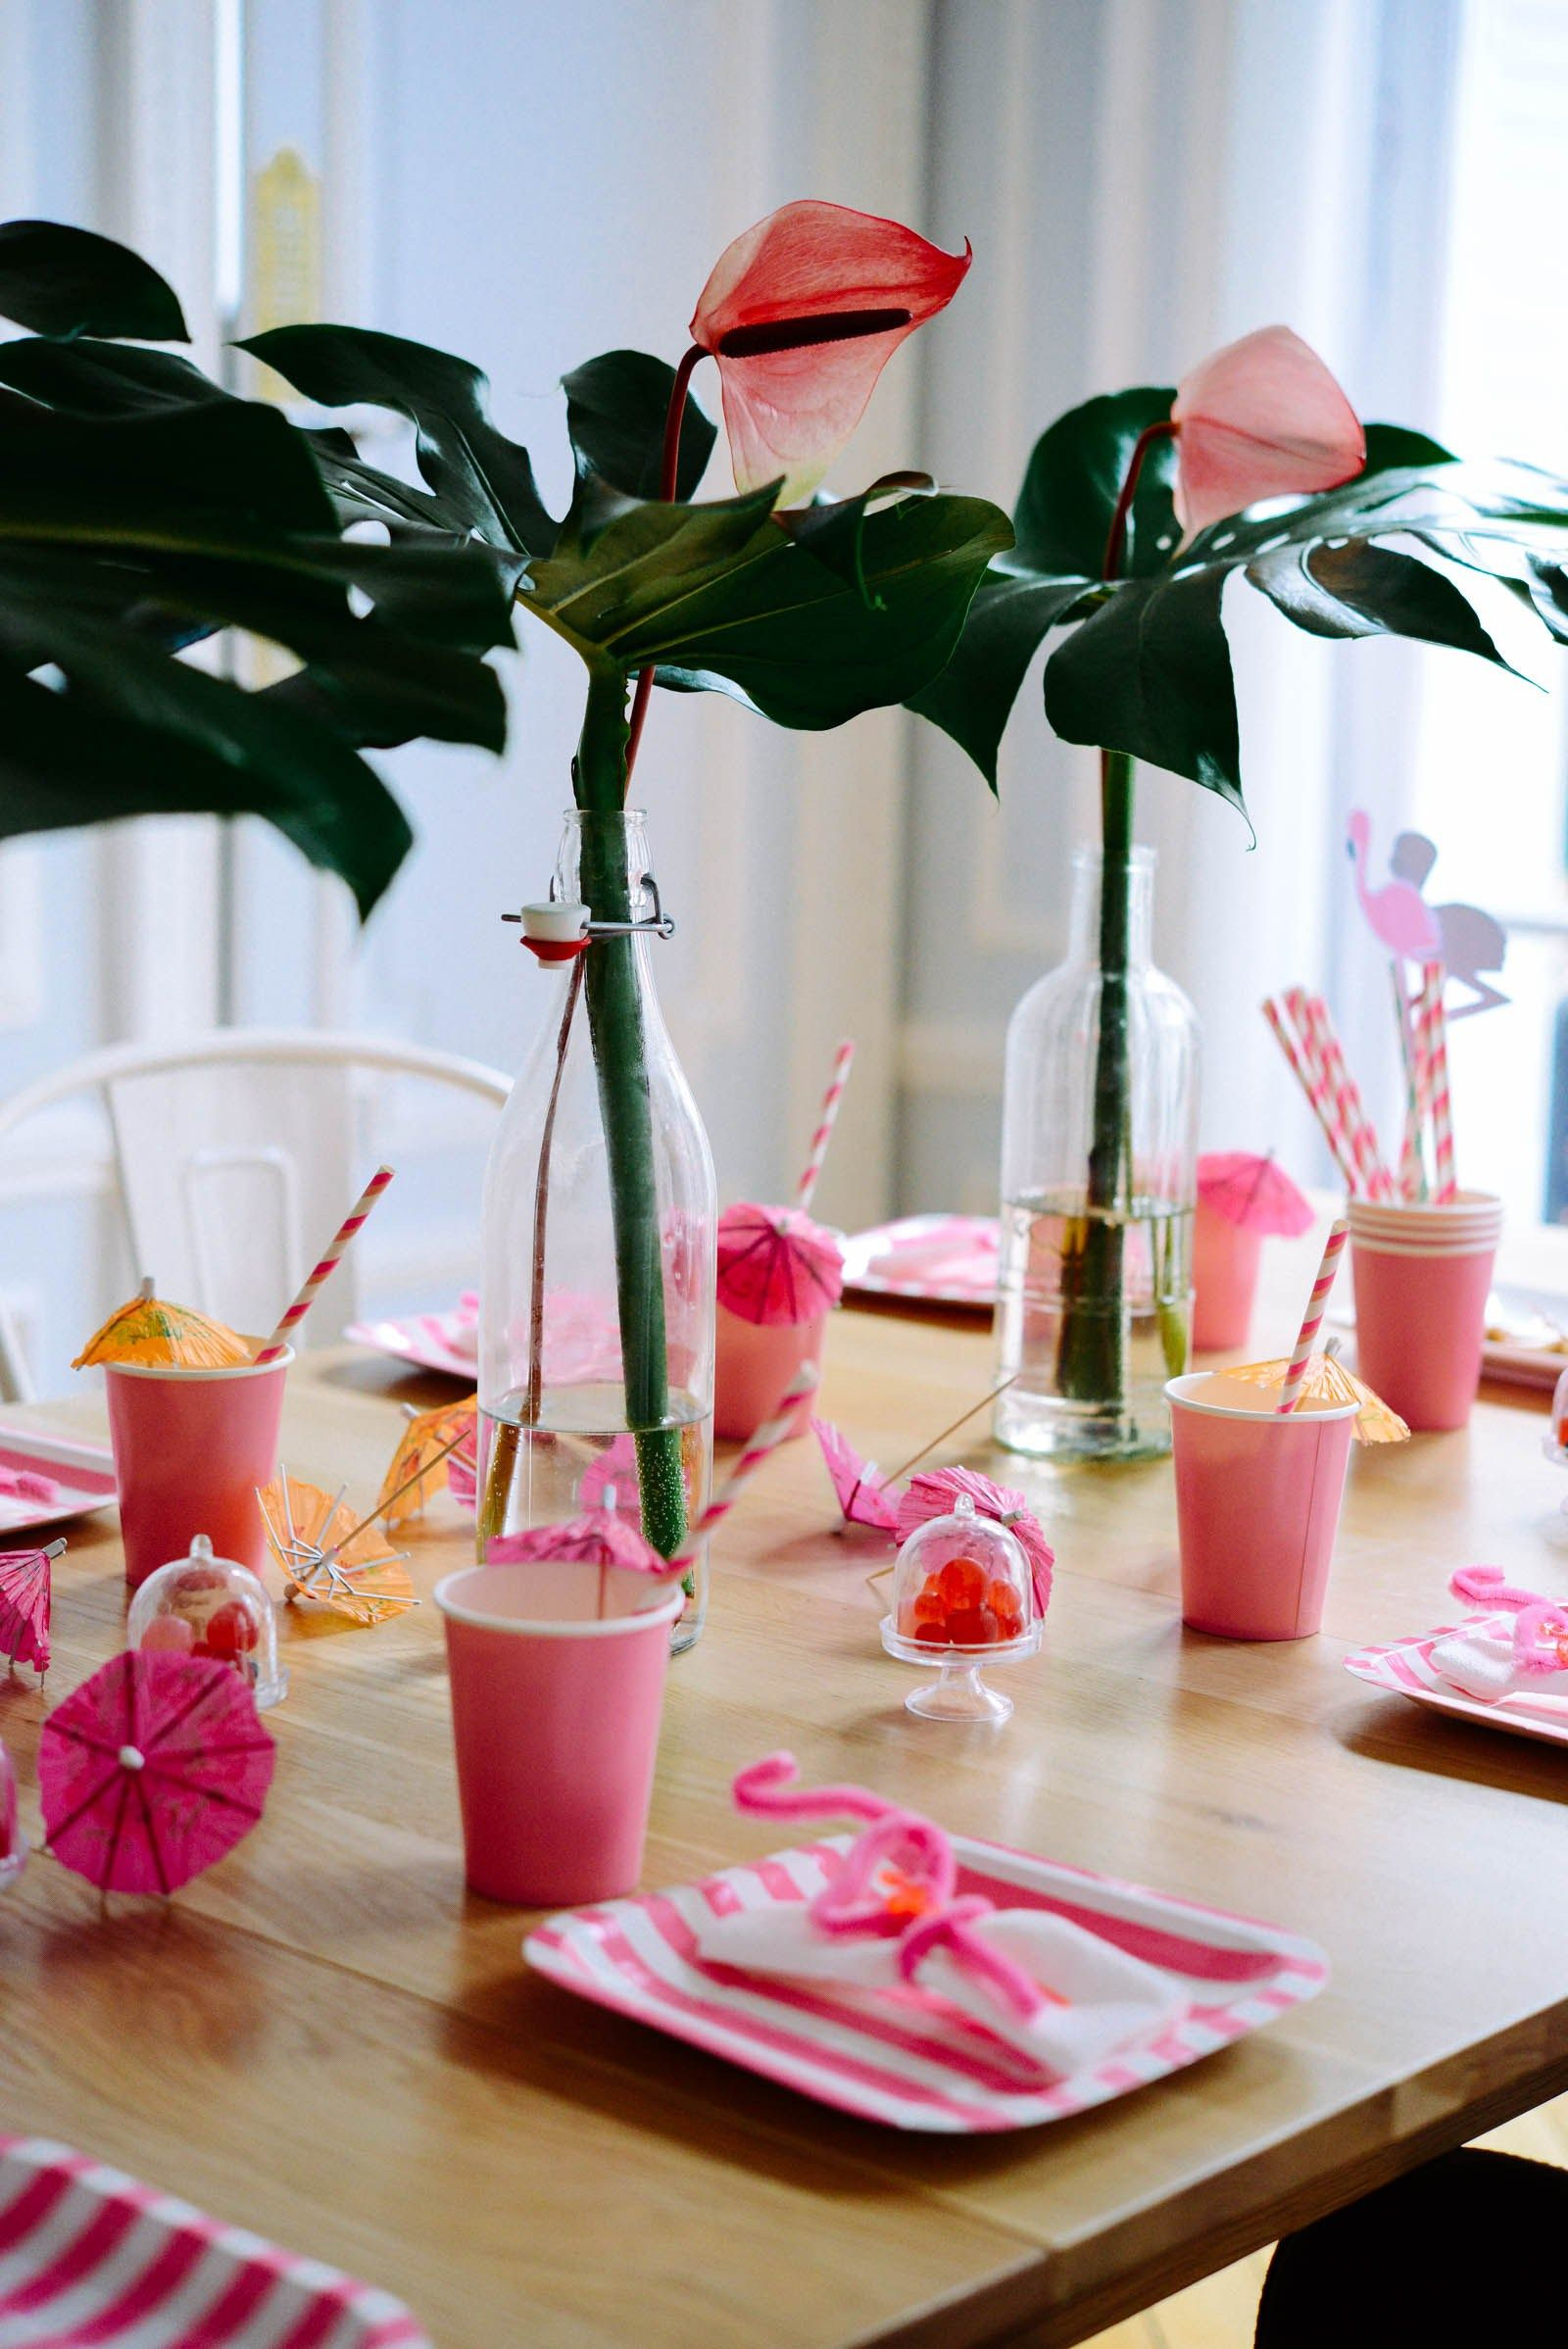 D co tropicale pour anniversaire d co tropicale pour f te for Deco flamant rose